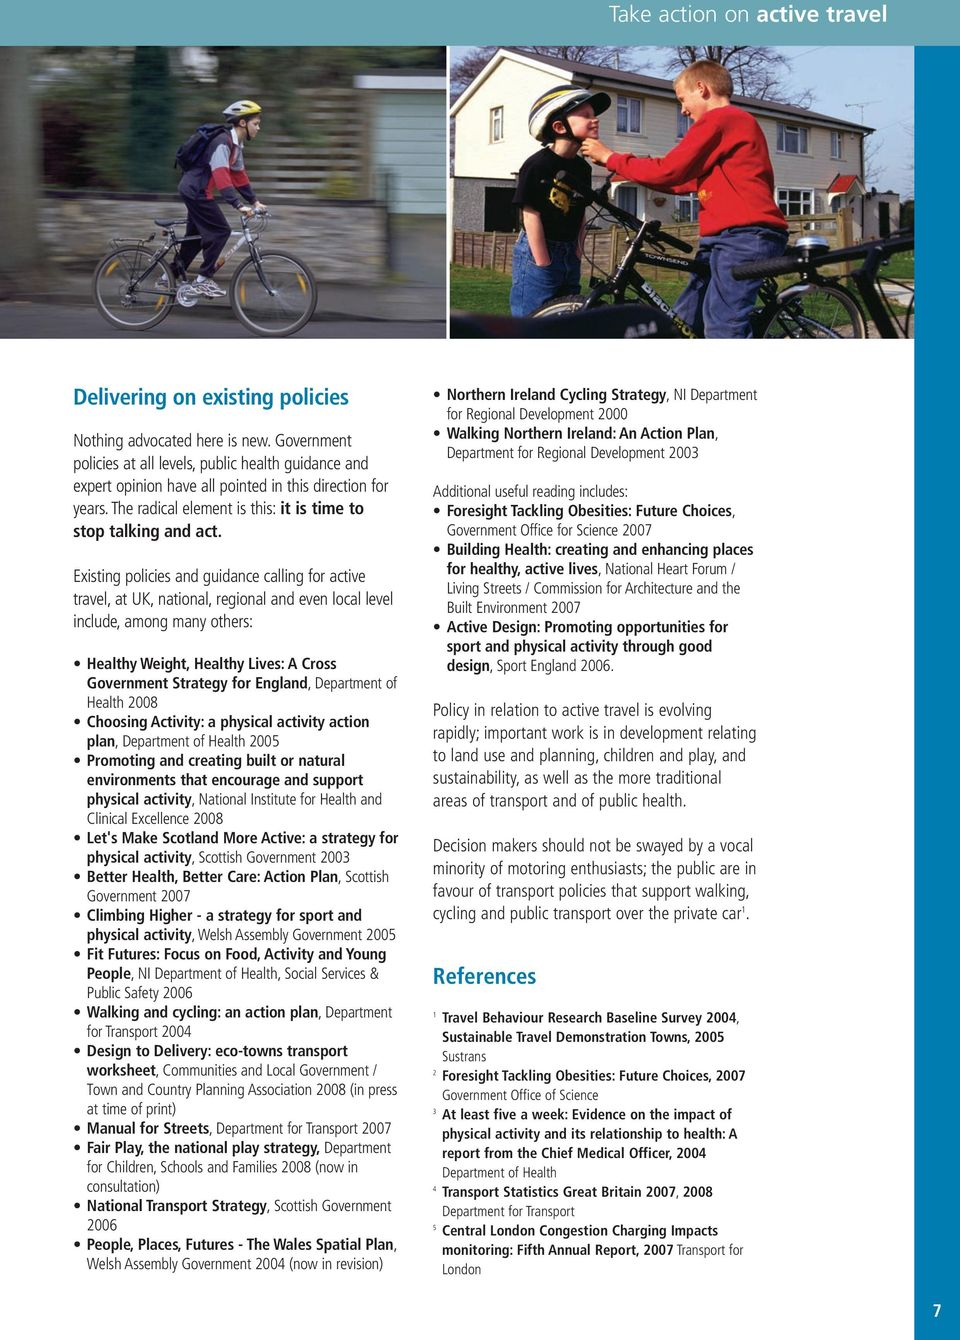 Existing policies and guidance calling for active travel, at UK, national, regional and even local level include, among many others: Healthy Weight, Healthy Lives: A Cross Government Strategy for